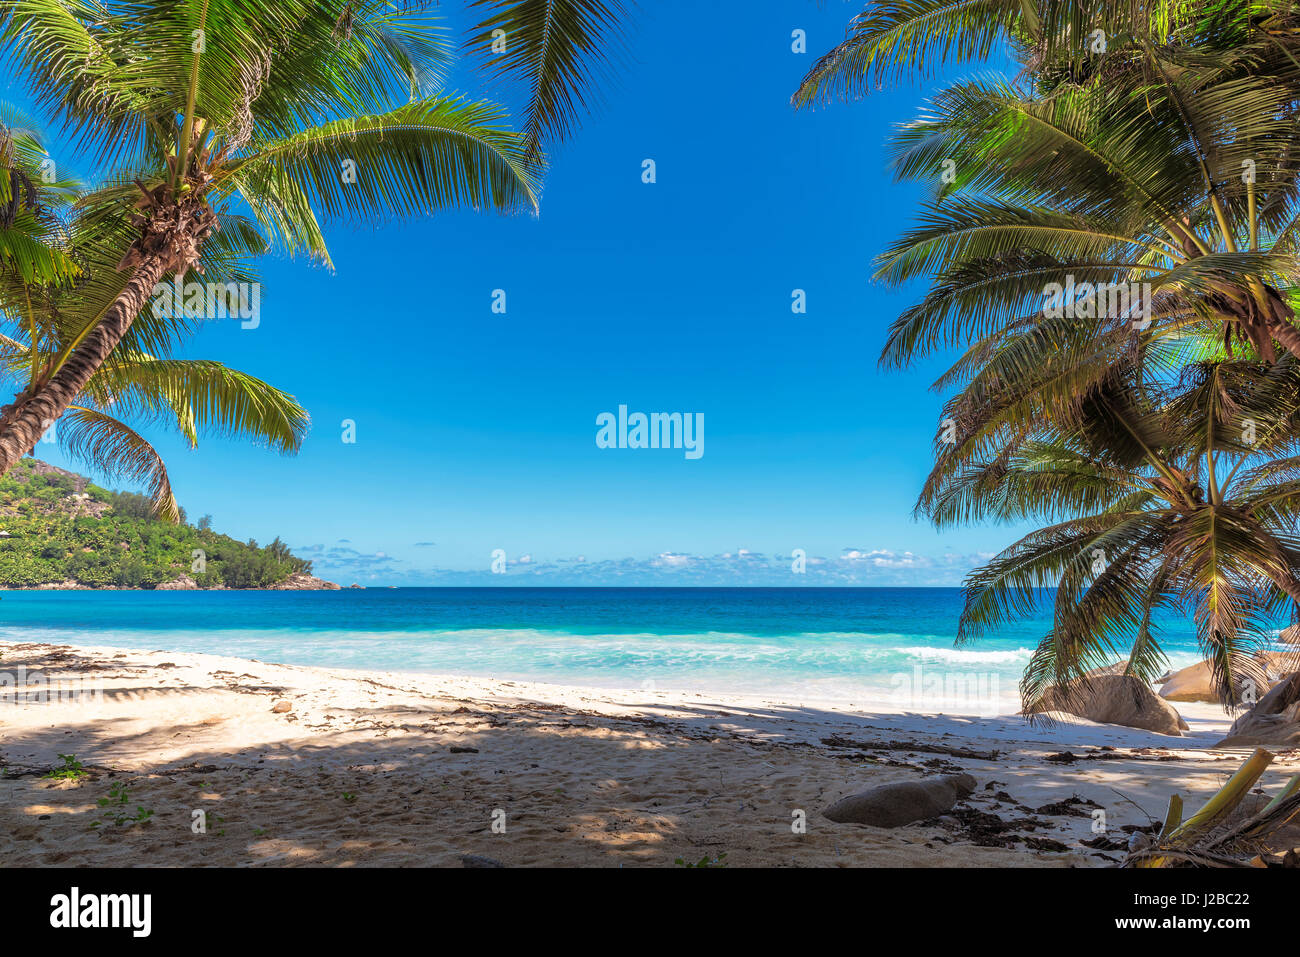 Tropical ocean beach with white sand, transparent turquoise water and coconut palm tree in bright sunny day. - Stock Image